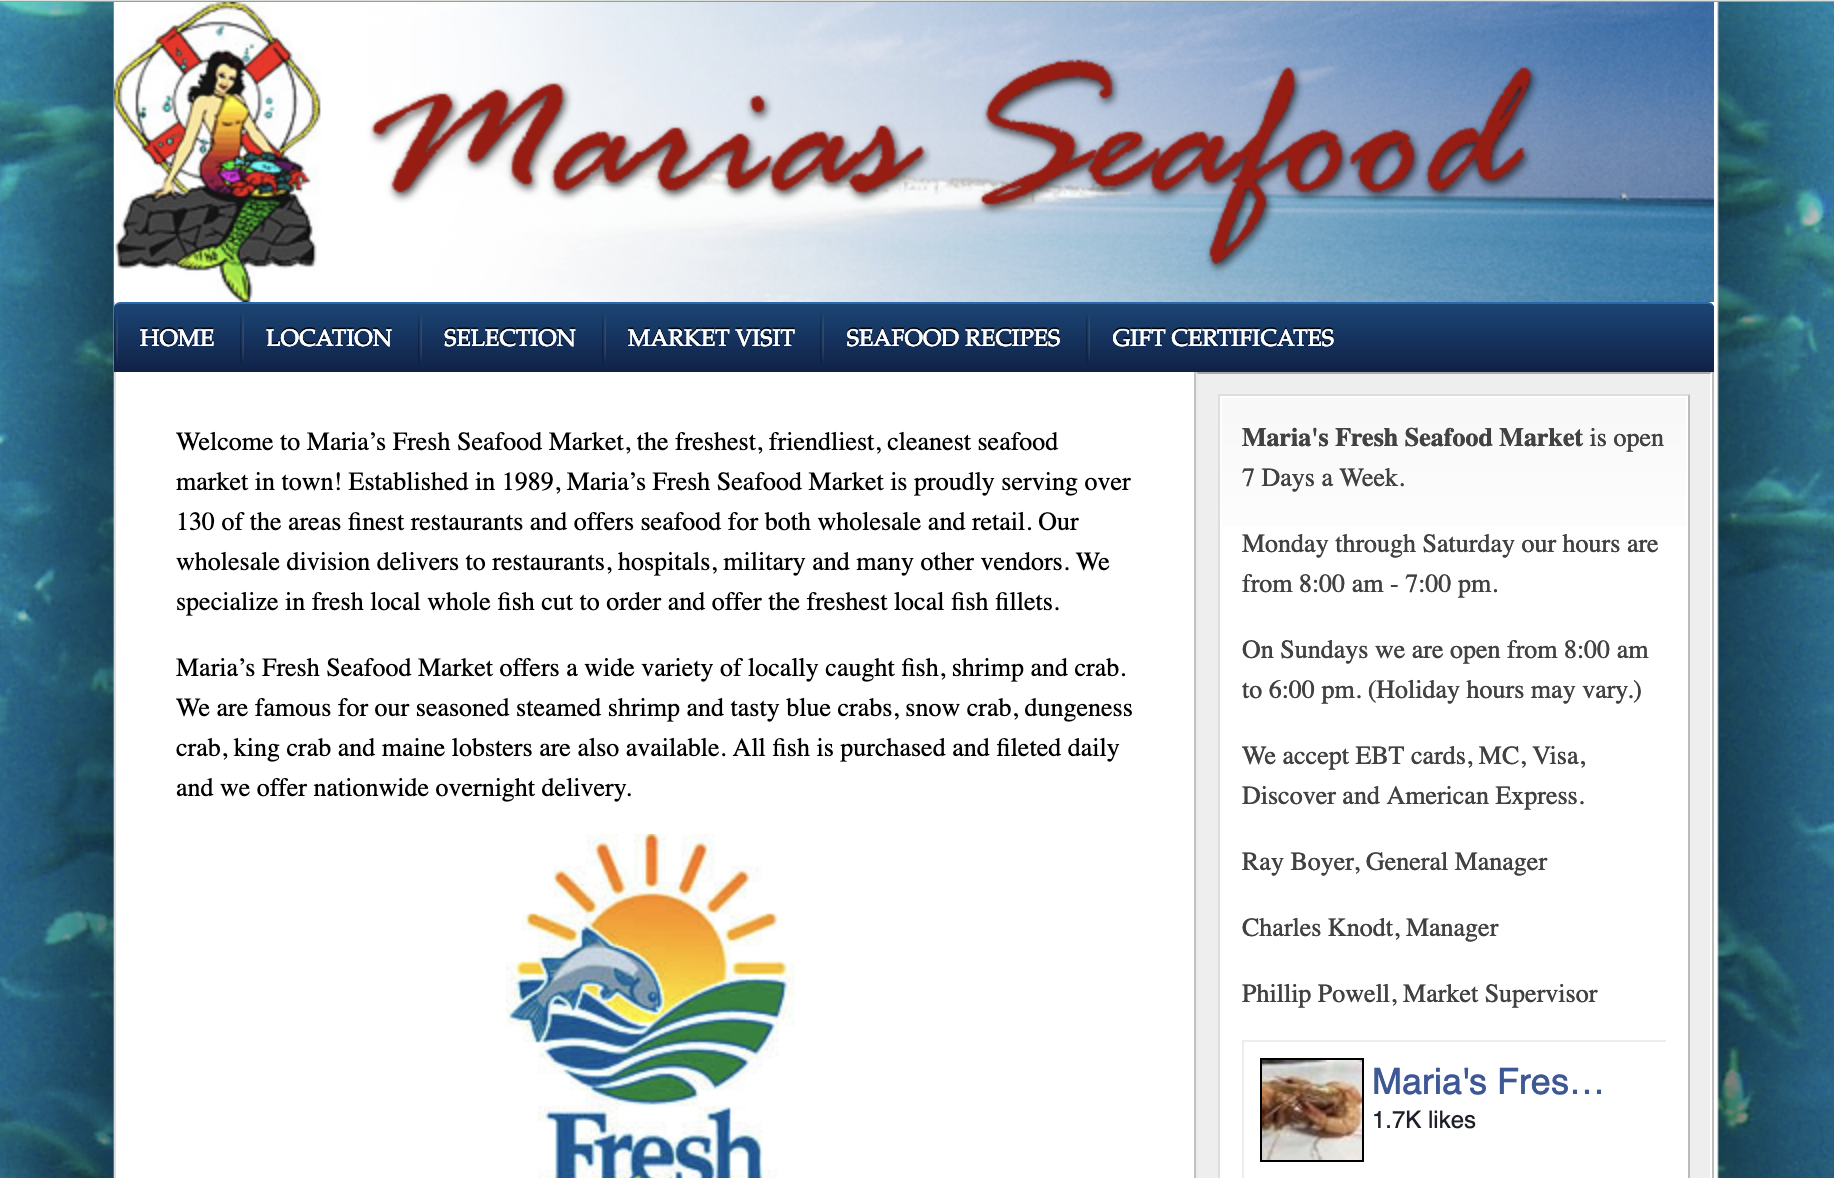 Maria's Seafood website screenshot